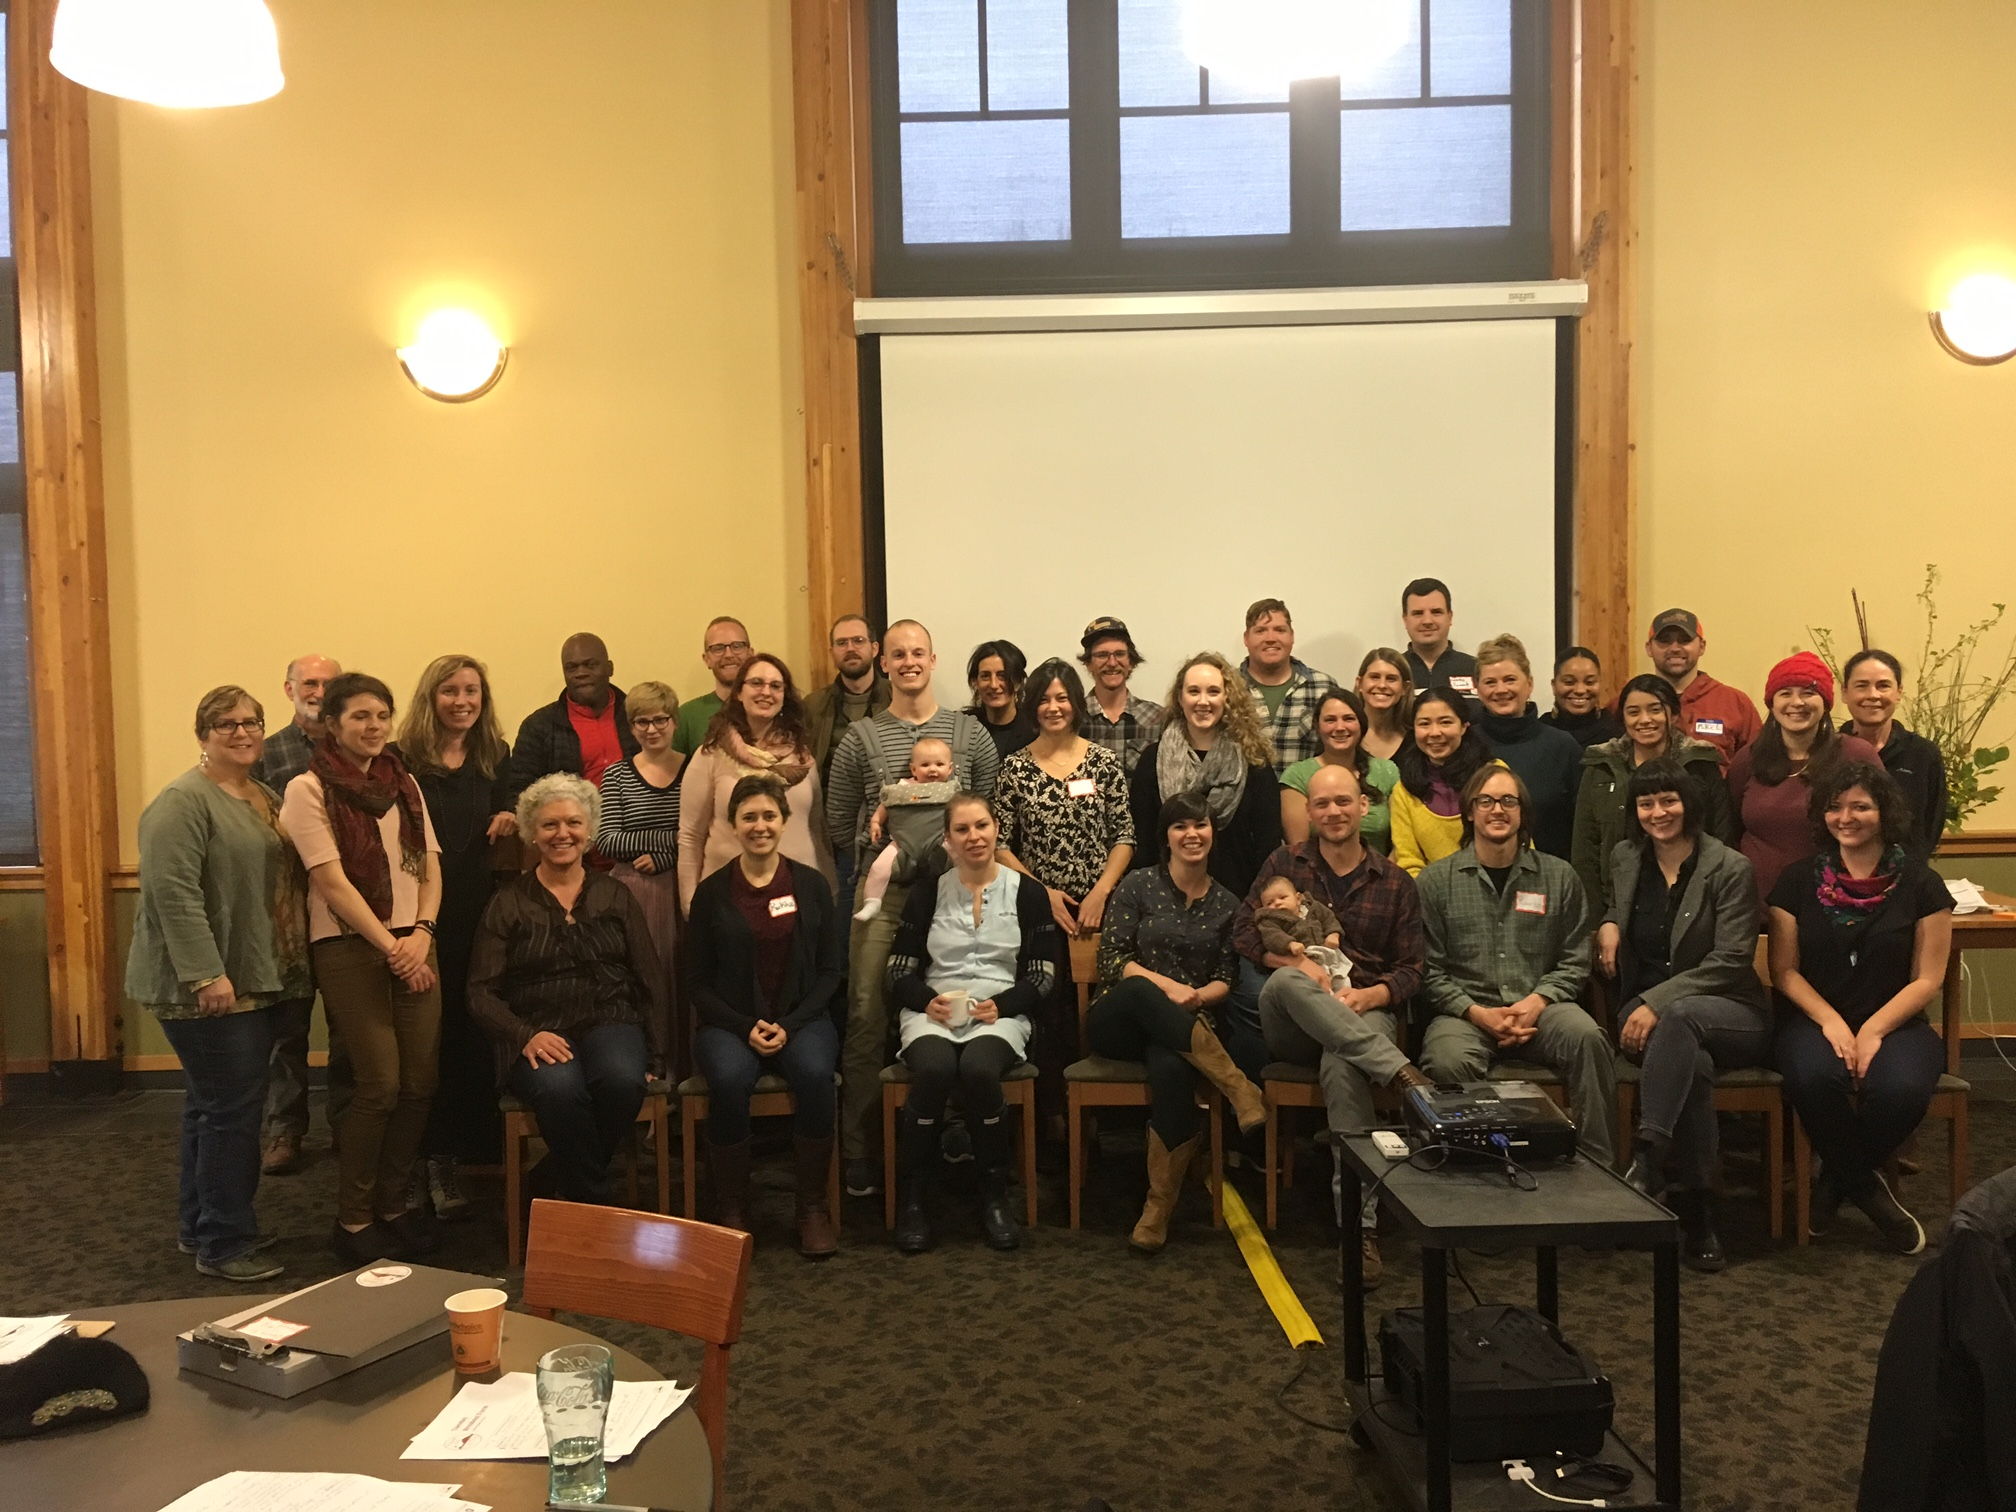 Participants from the inaugural Rethinking Rural Symposium in Fort Townsend, Washington come together for a picture. (Photo from Madeline Moore).